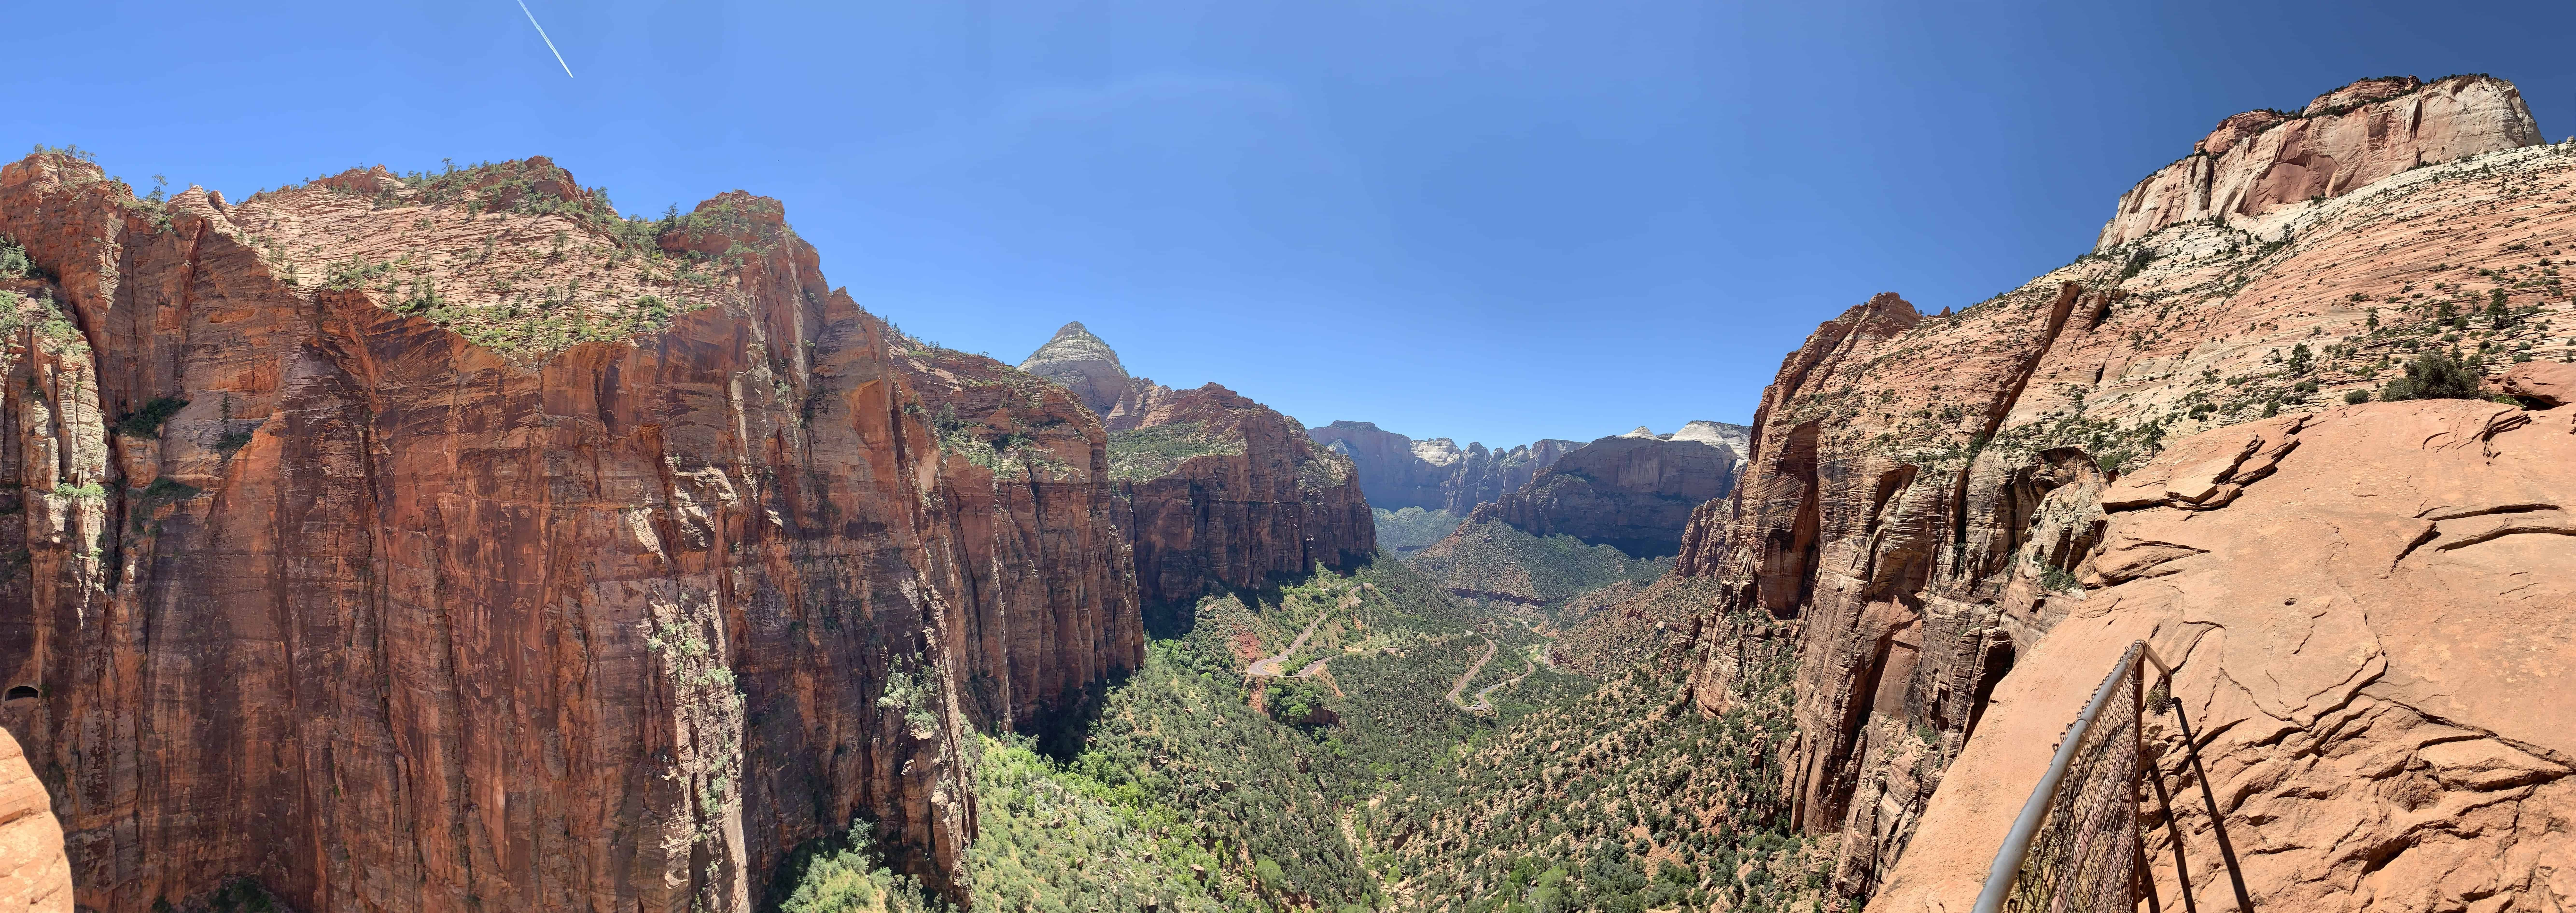 Canyon Overlook View Zion